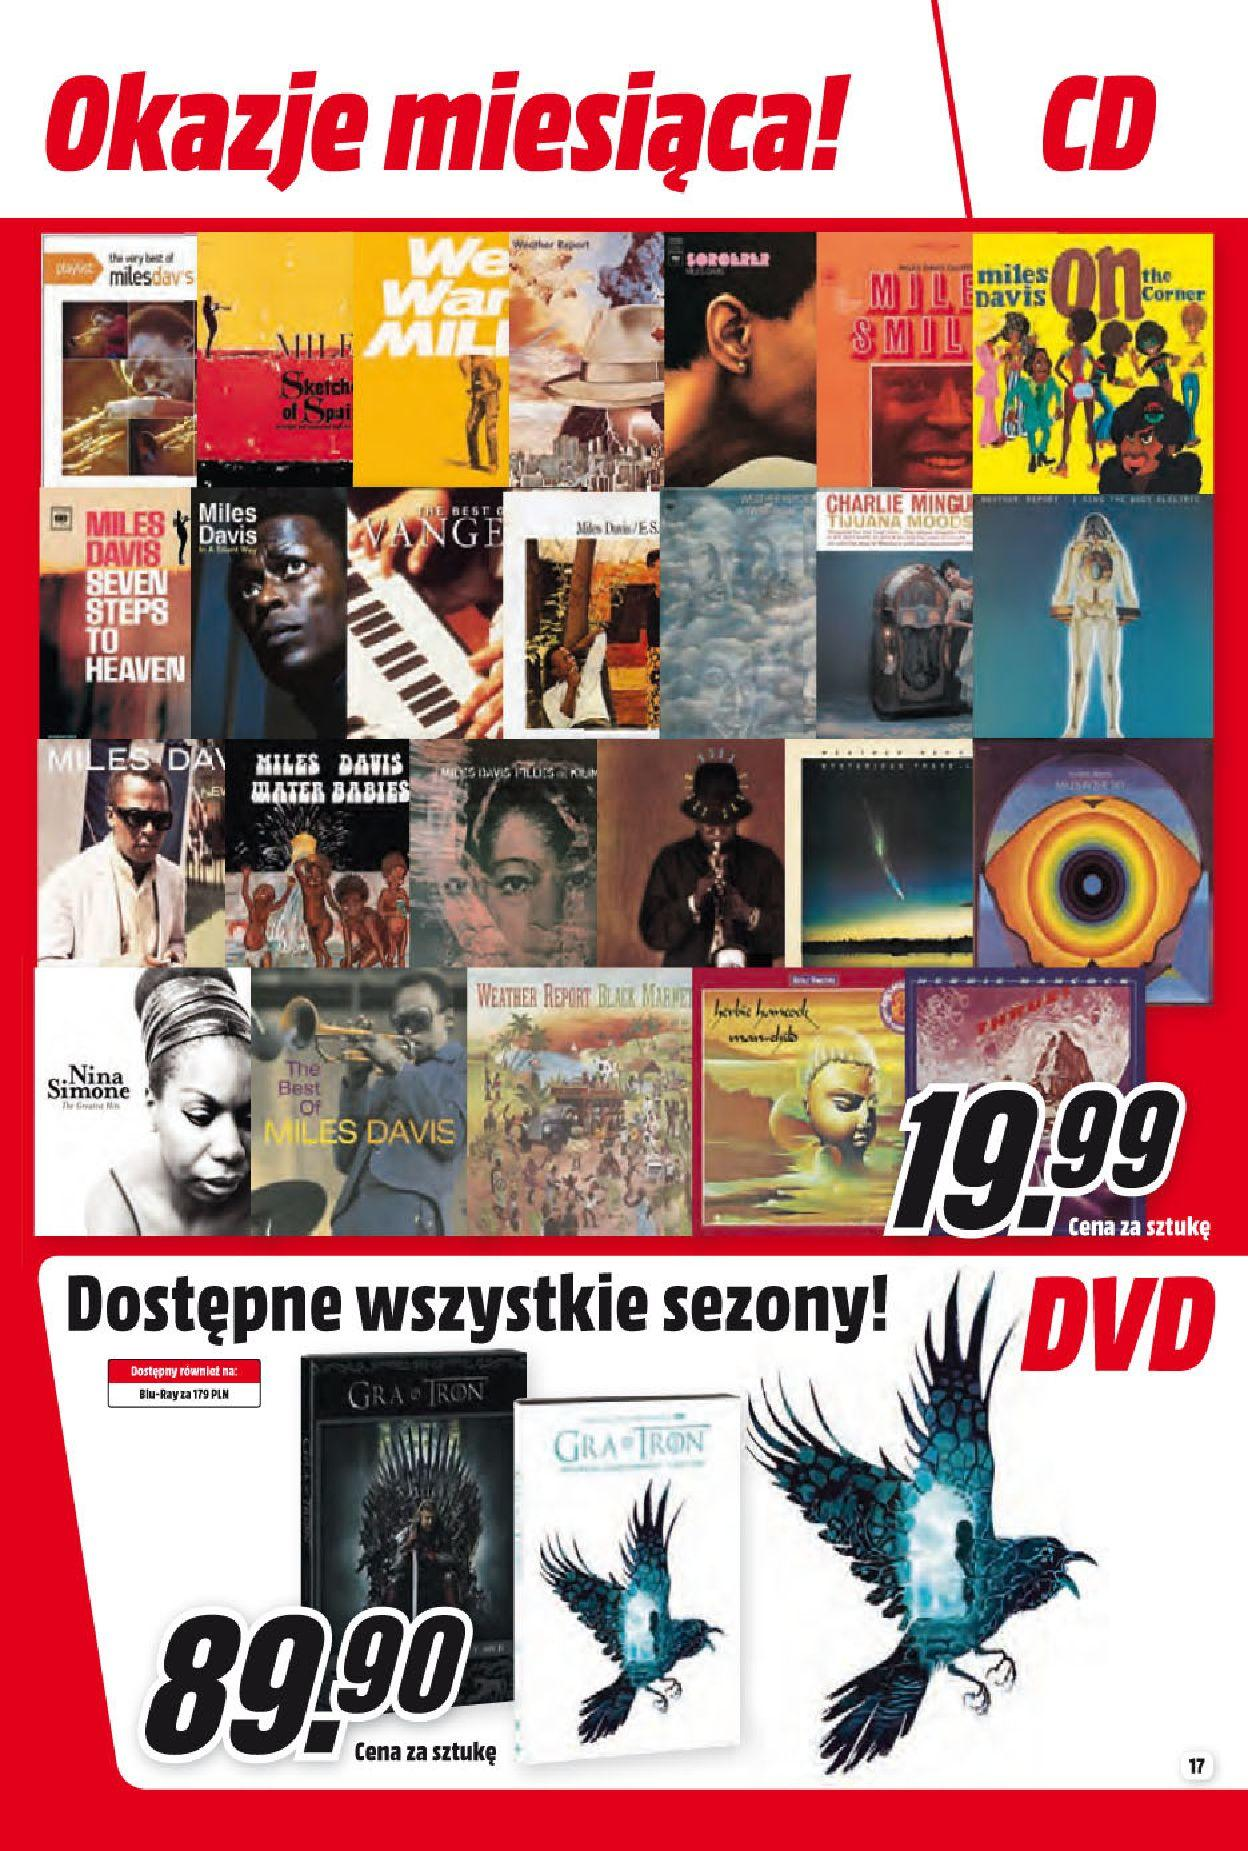 Gazetka promocyjna Media Markt do 31/05/2019 str.17